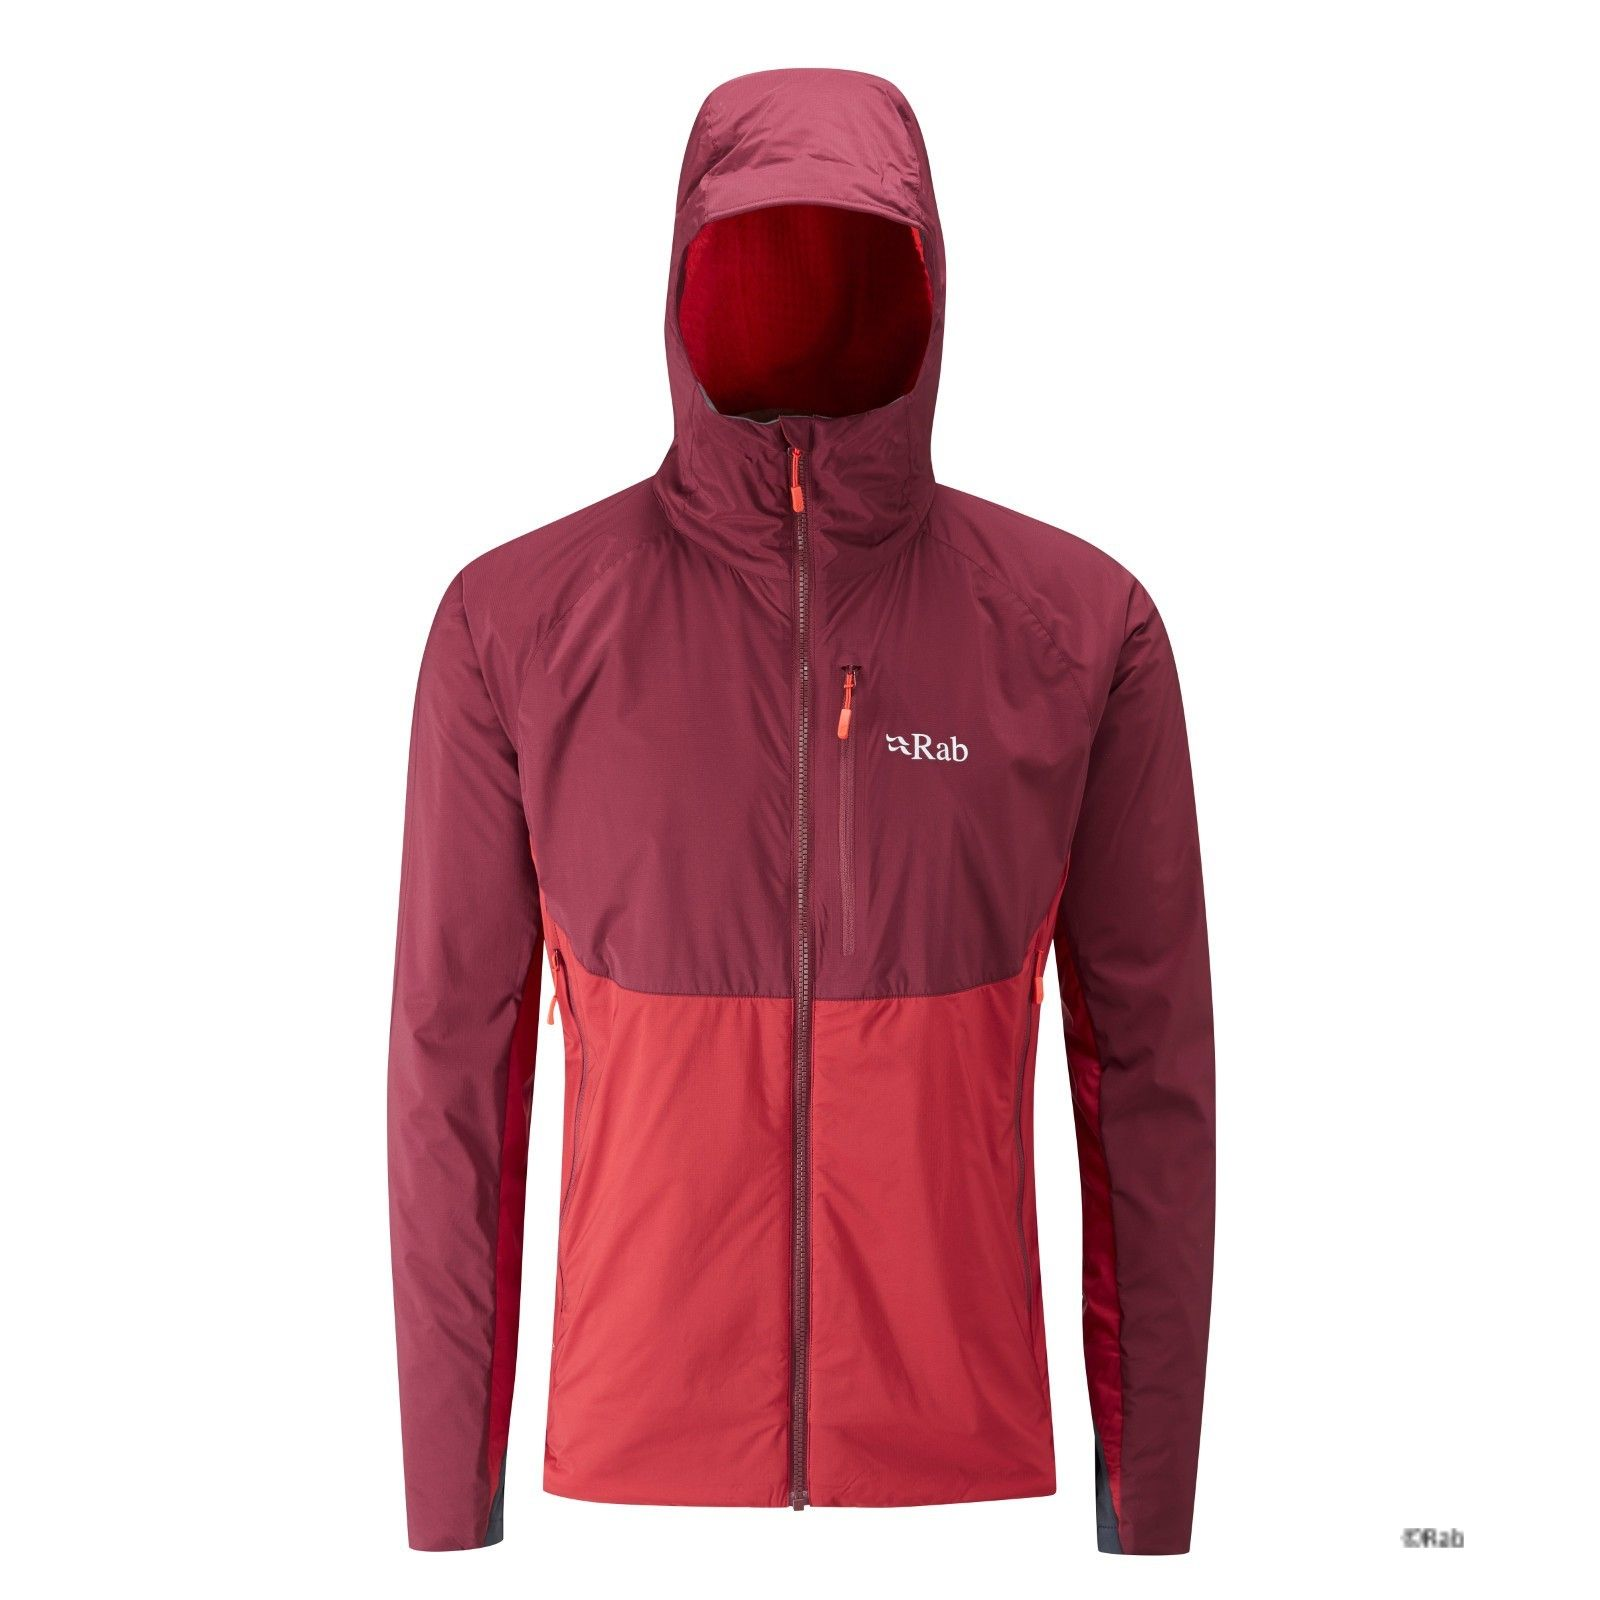 9062d7d0c Polartec Alpha  The Best Kept Secret In The Outdoors - Outdoors Magic. A  review of Rab s Alpha Direct Jacket